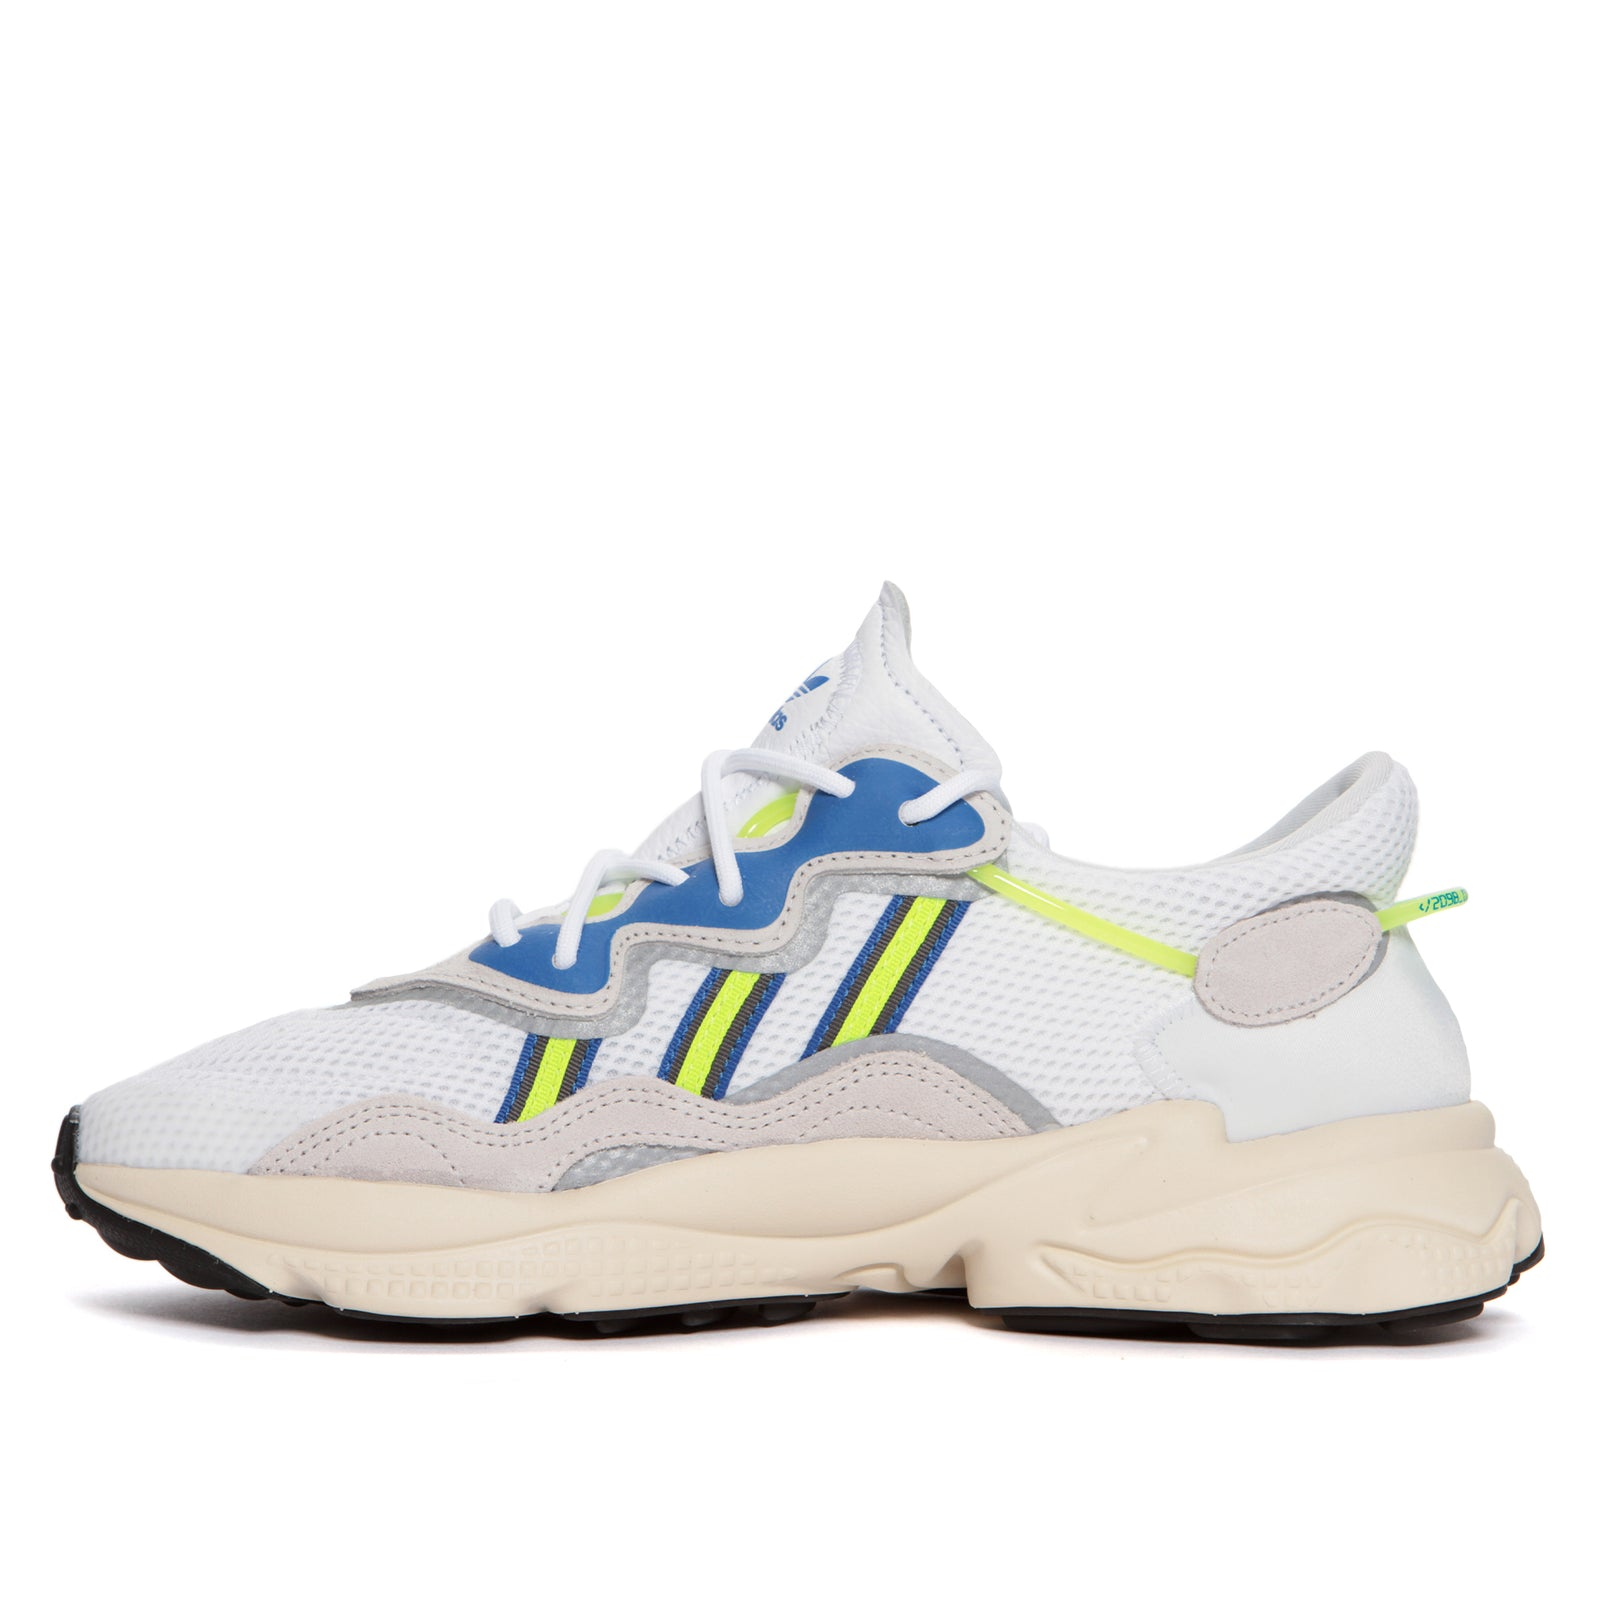 Adidas Originals Osweego Shoes